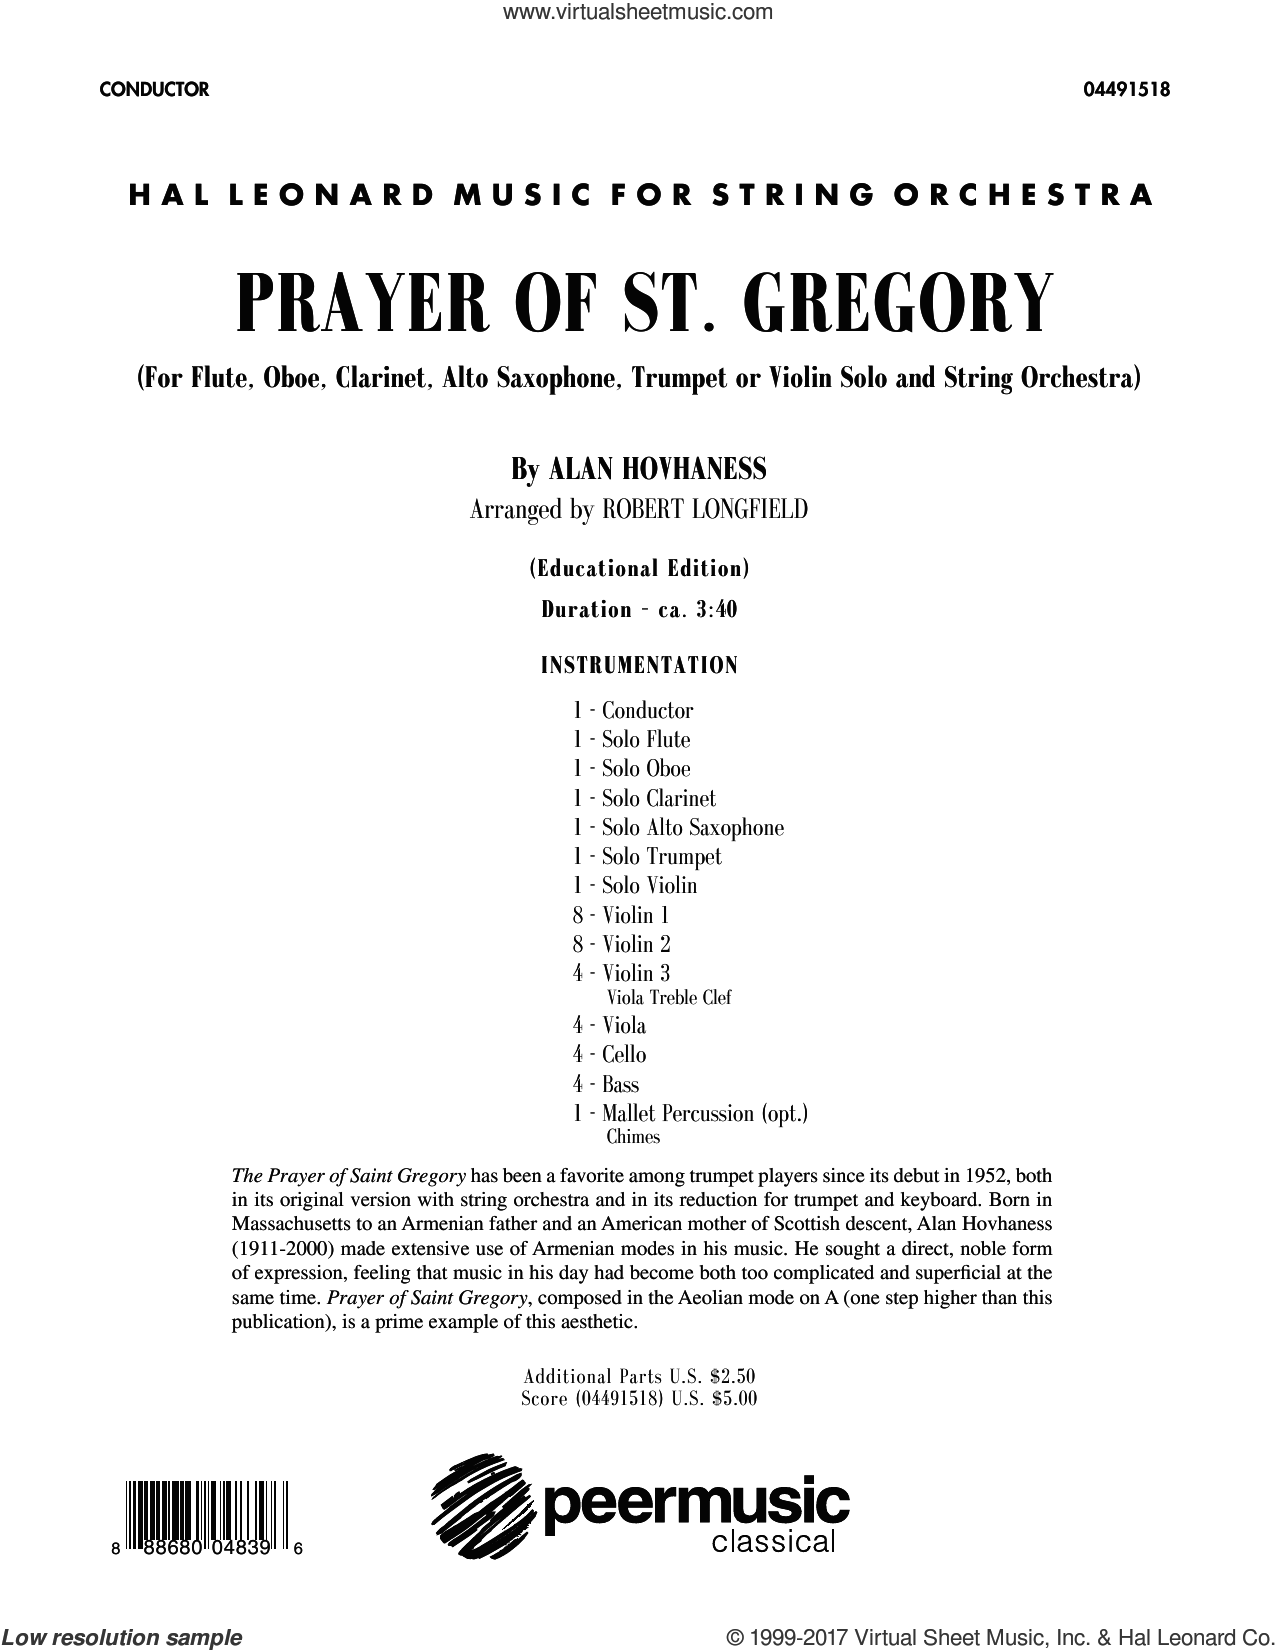 Prayer of St. Gregory (Educational Edition) (COMPLETE) sheet music for orchestra by Robert Longfield and Alan Hovhaness, classical score, intermediate skill level